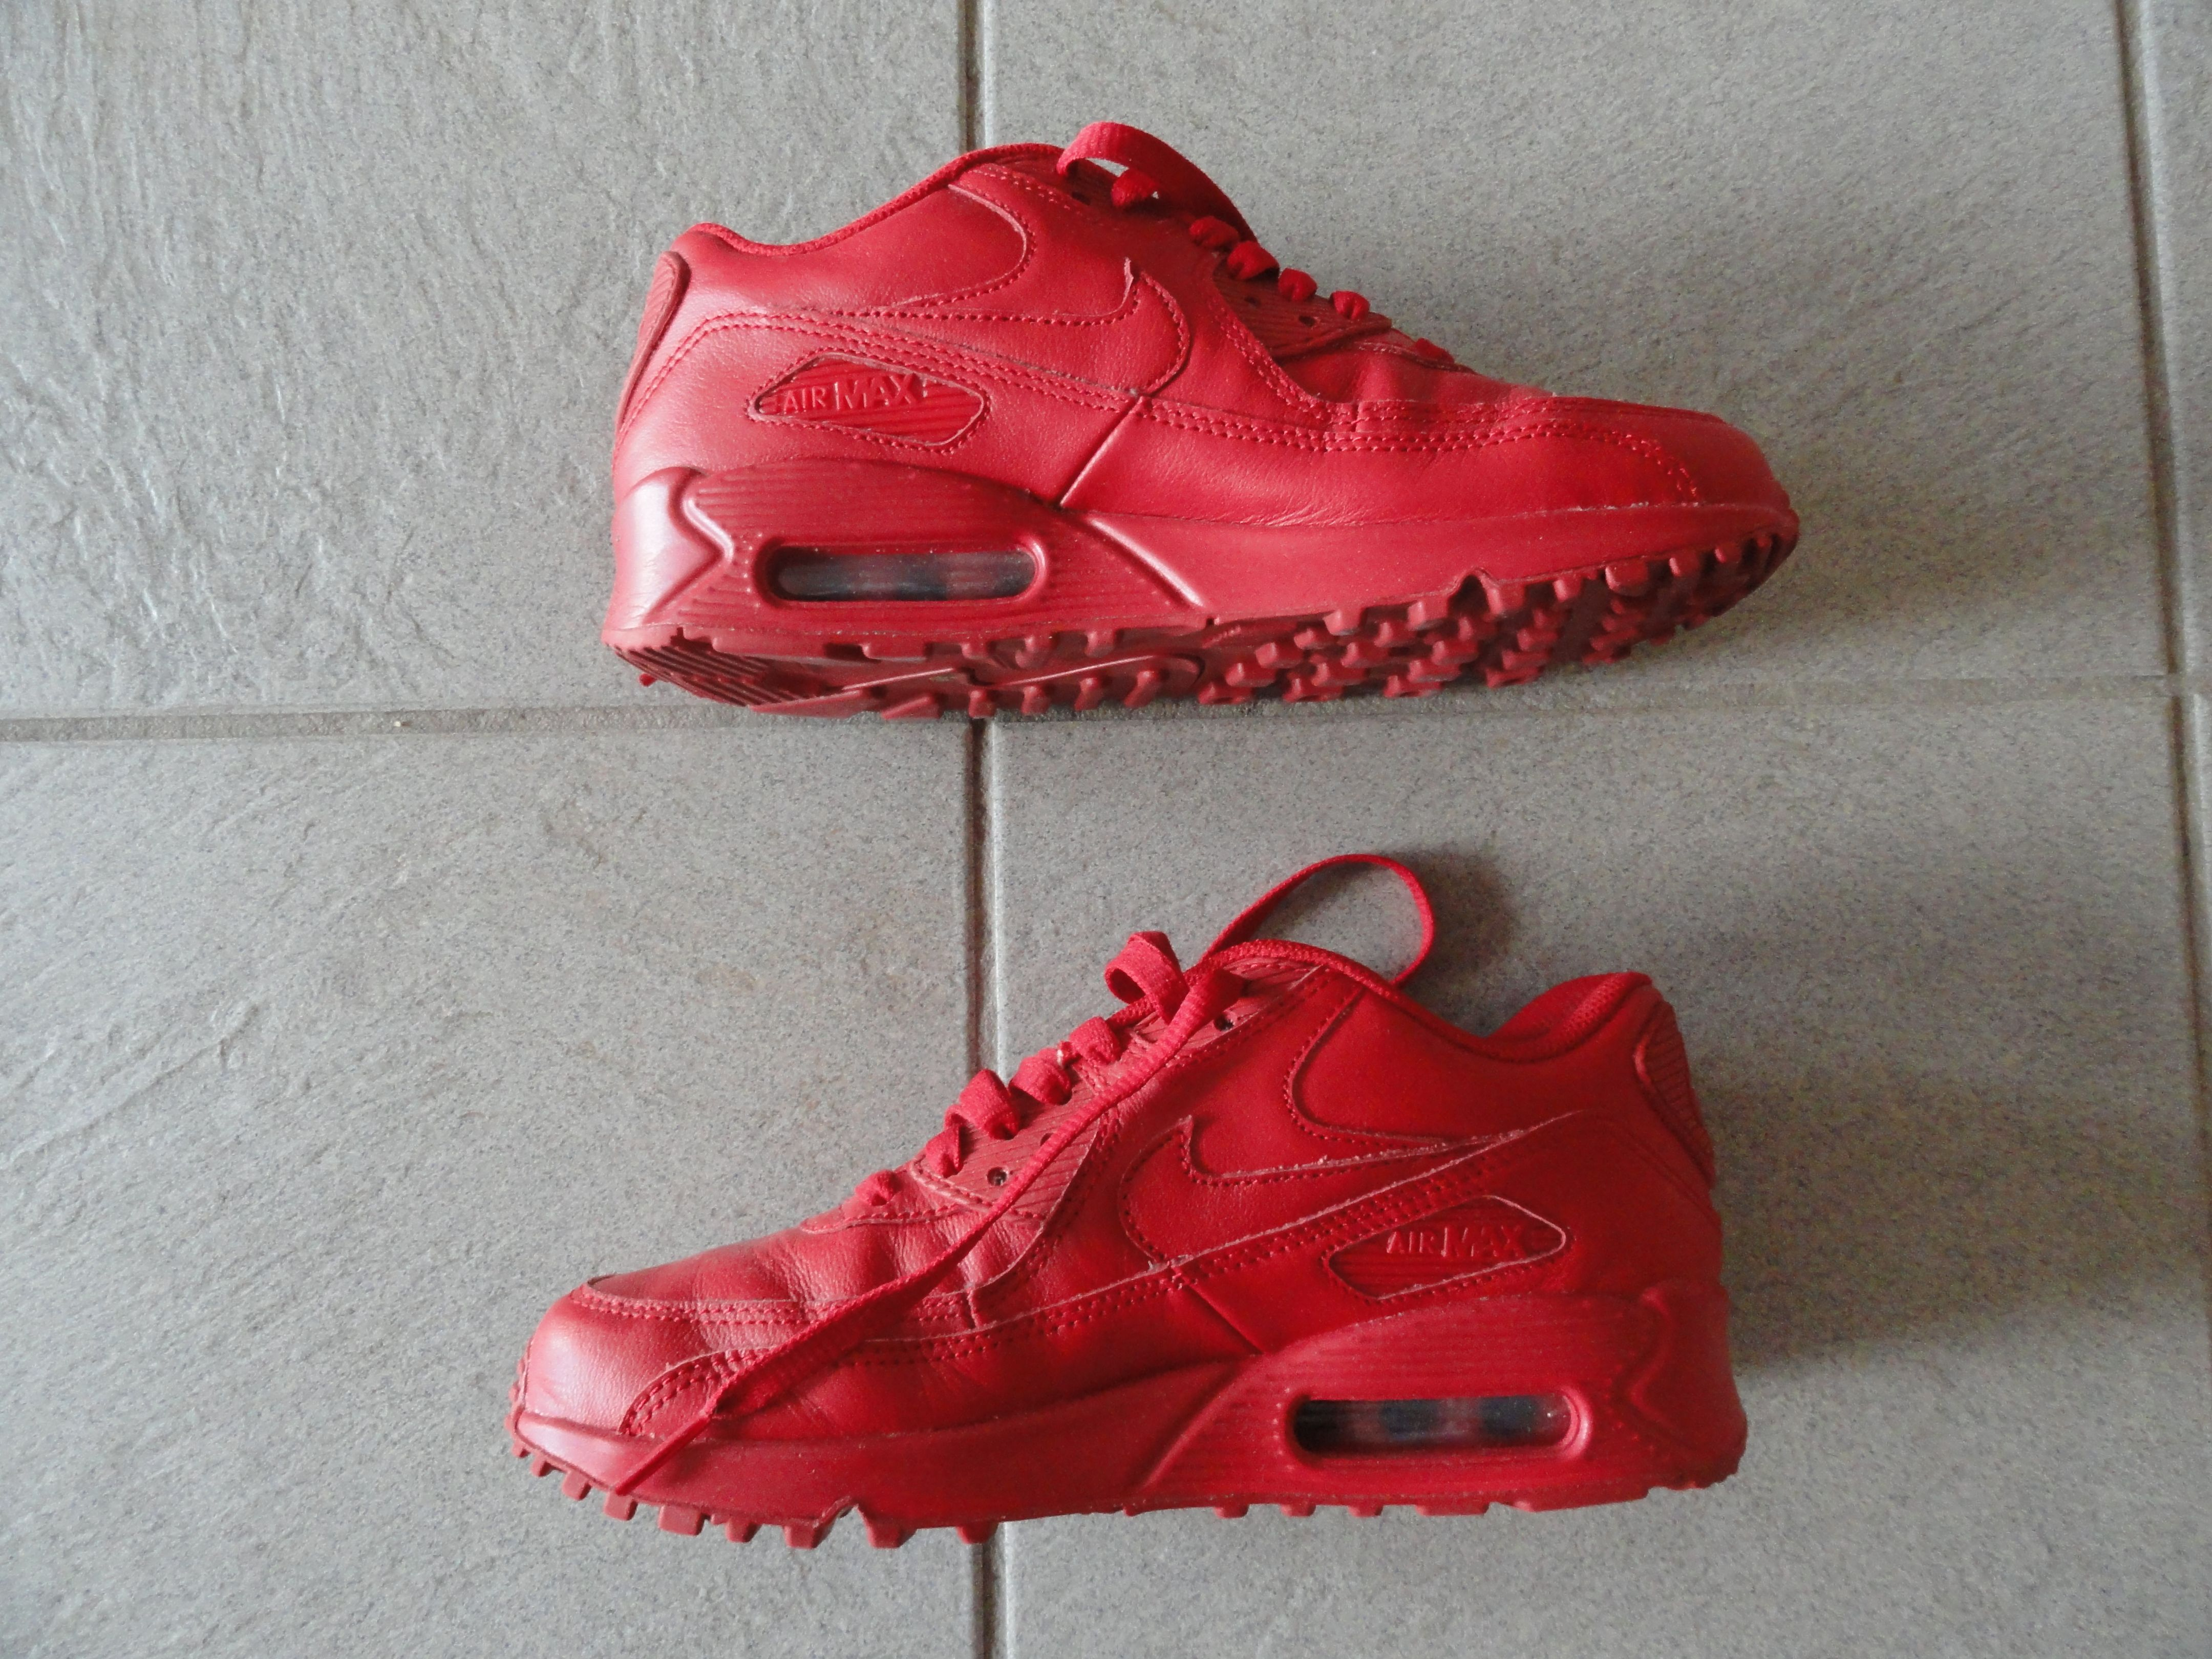 Nike Air Max 90 id university red leather sneakers my design